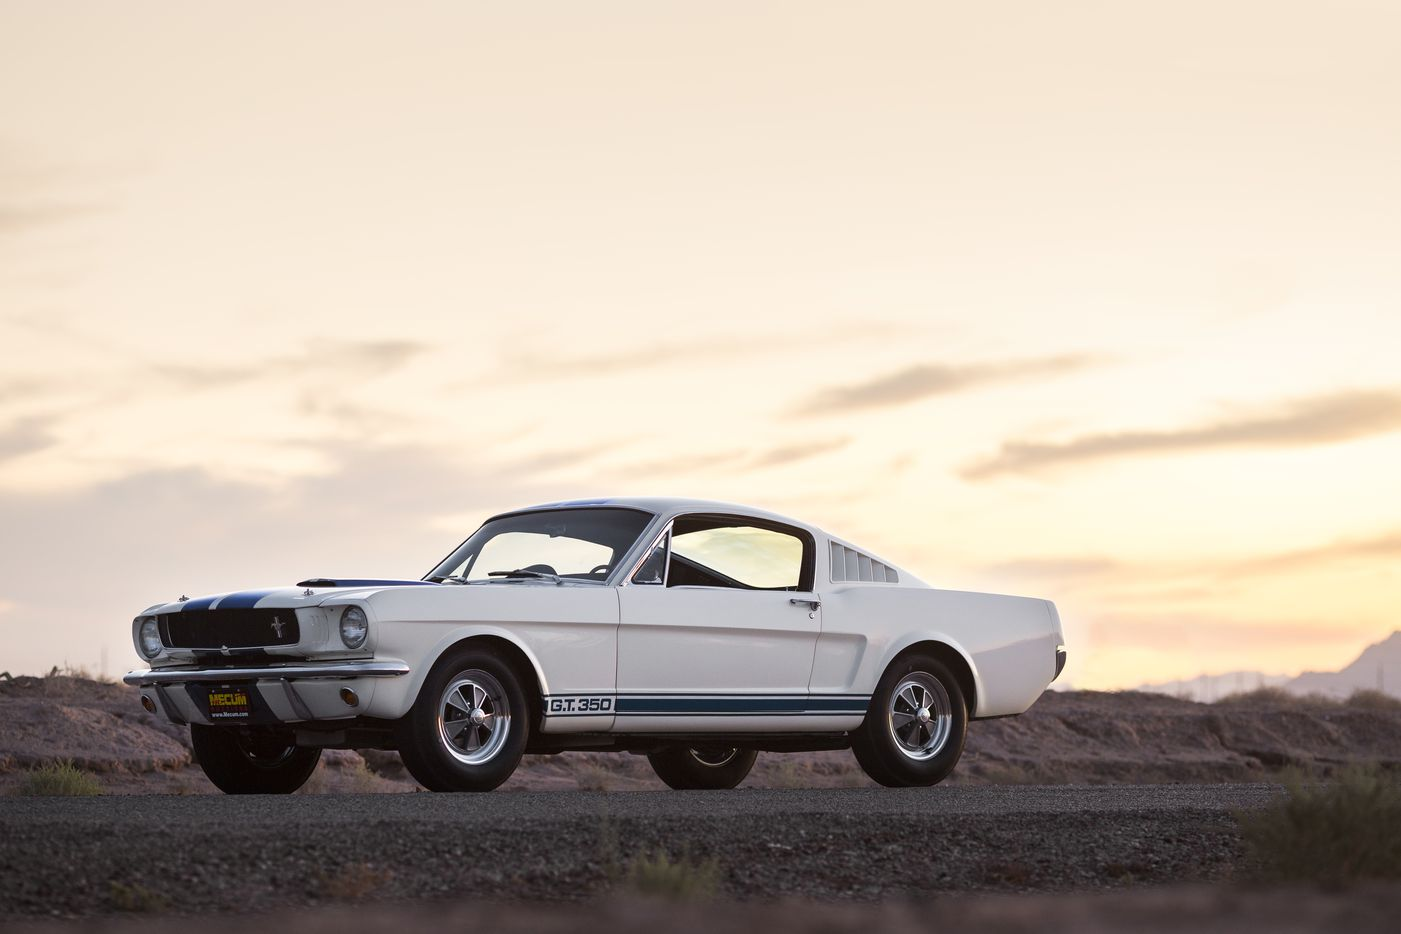 Lot S120 1965 Shelby GT350 Fastback (Mecum)